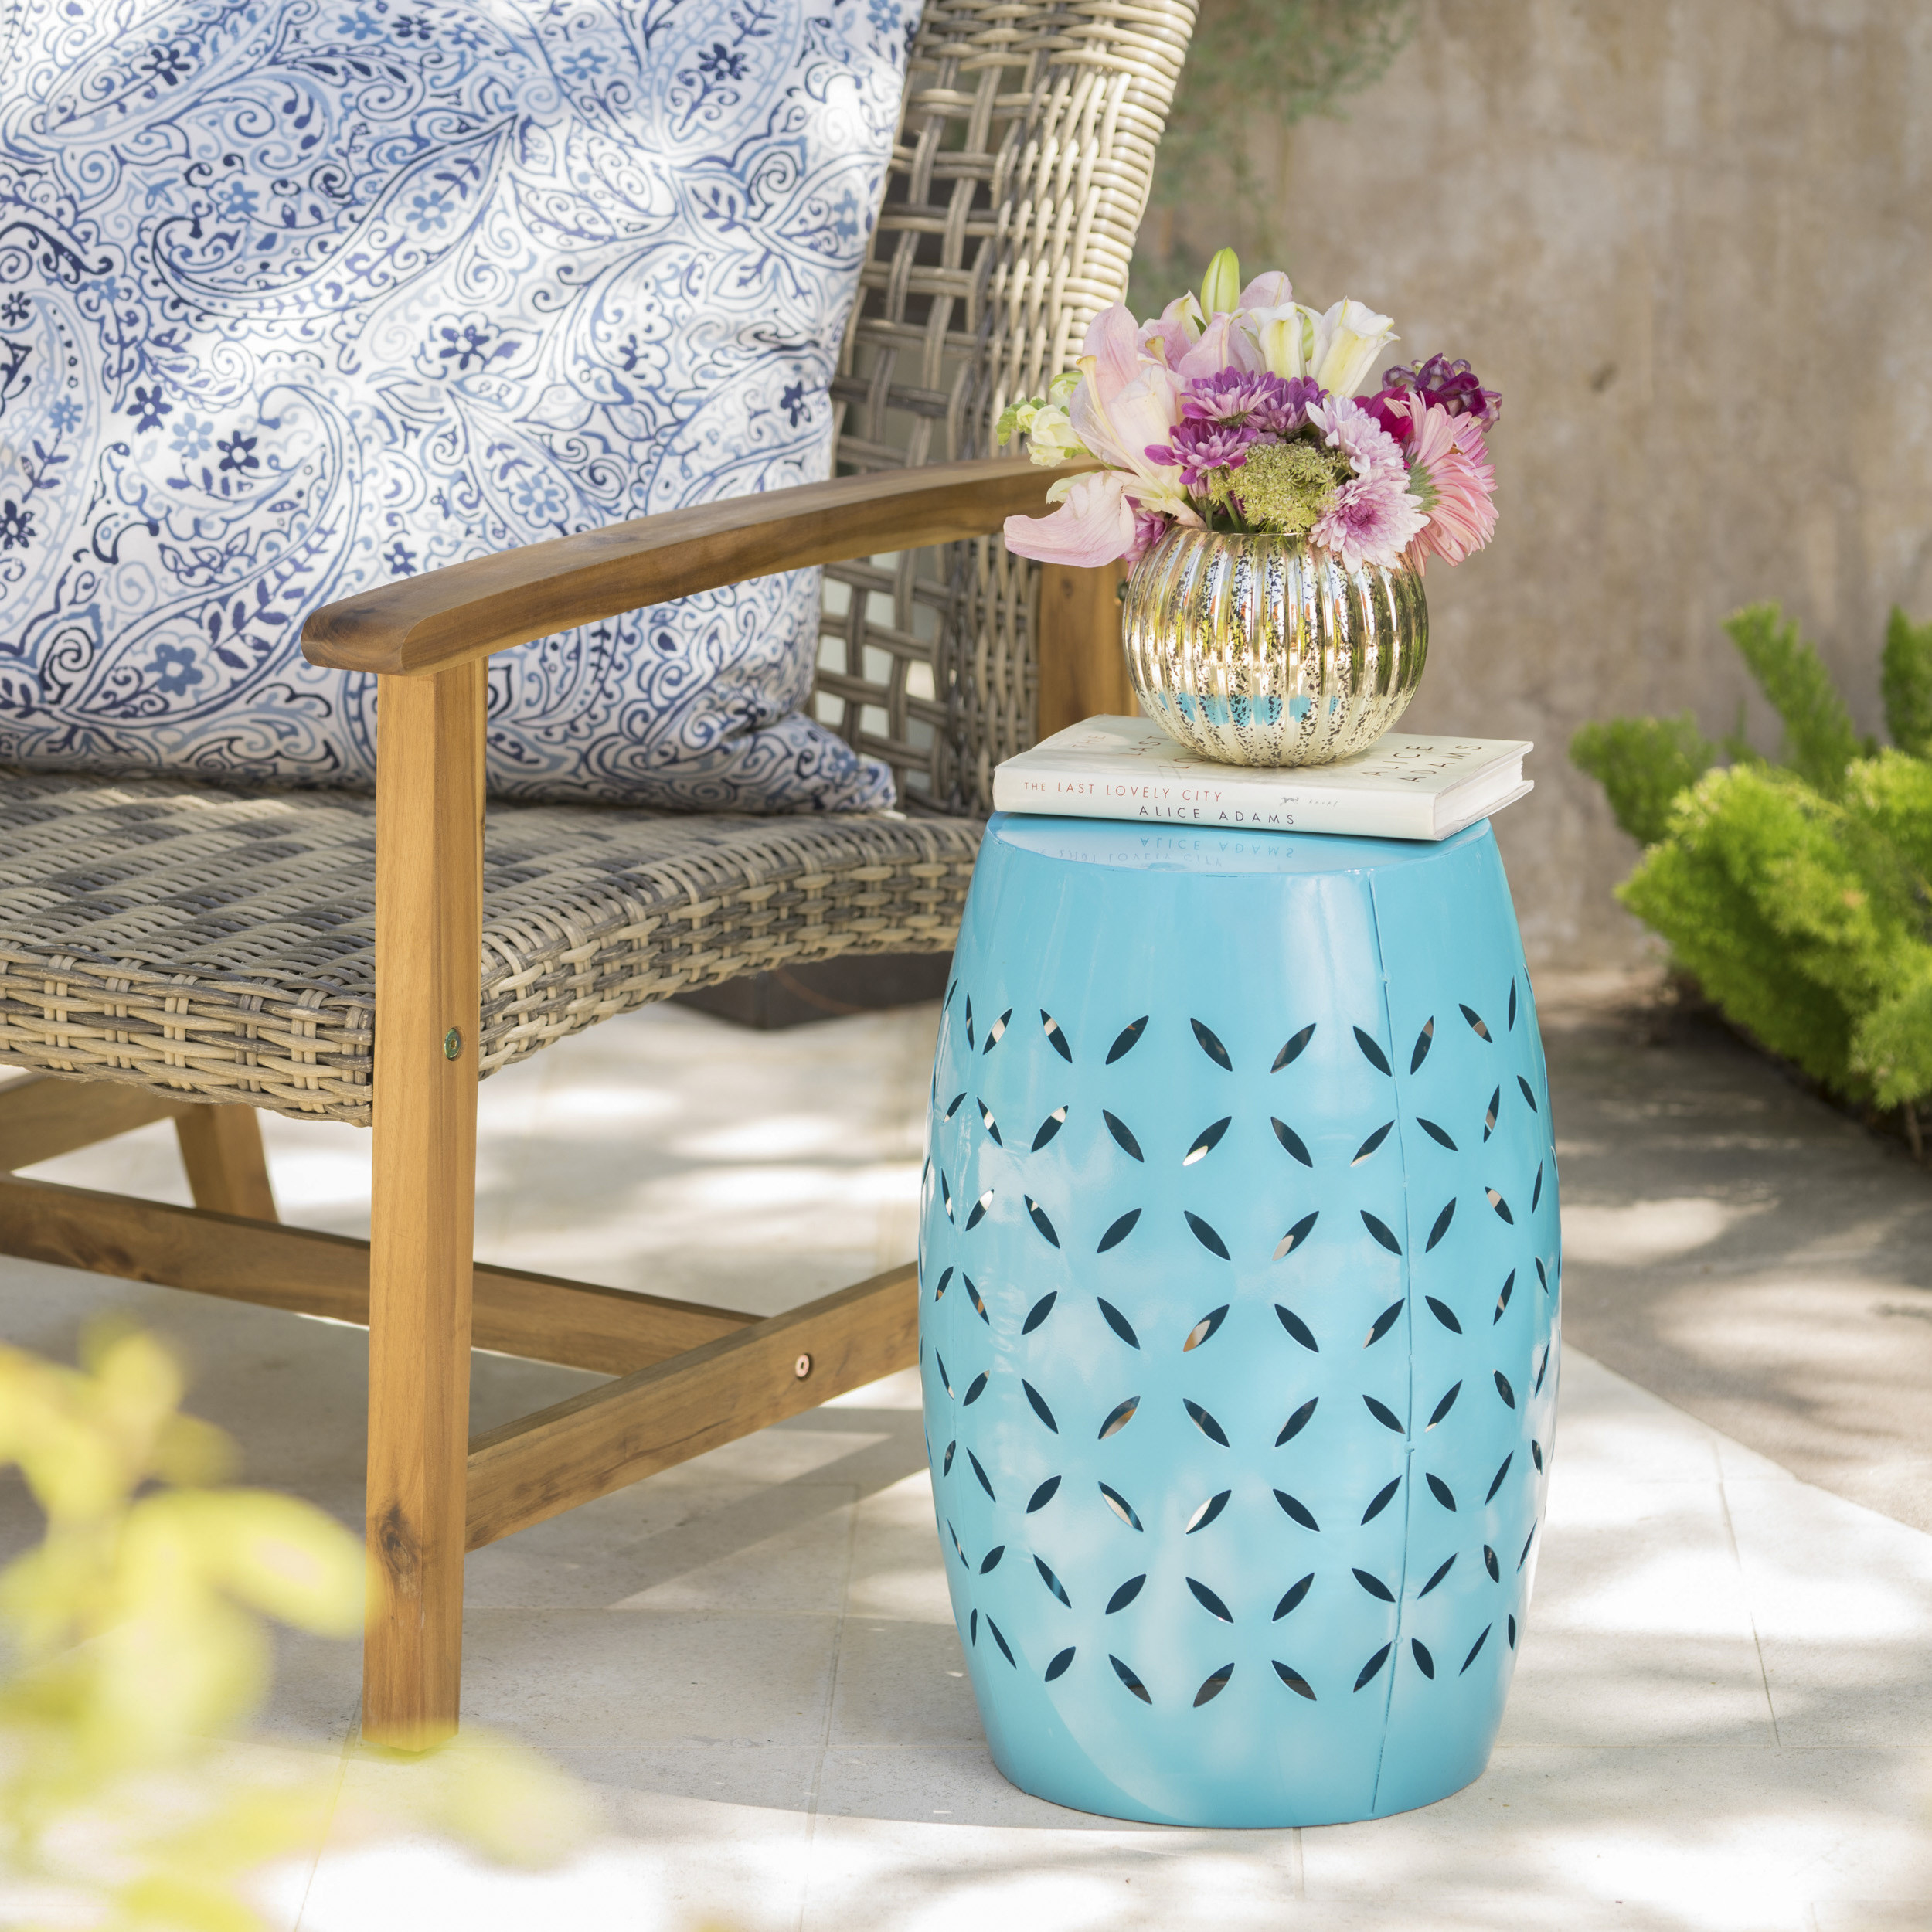 The teal accent table